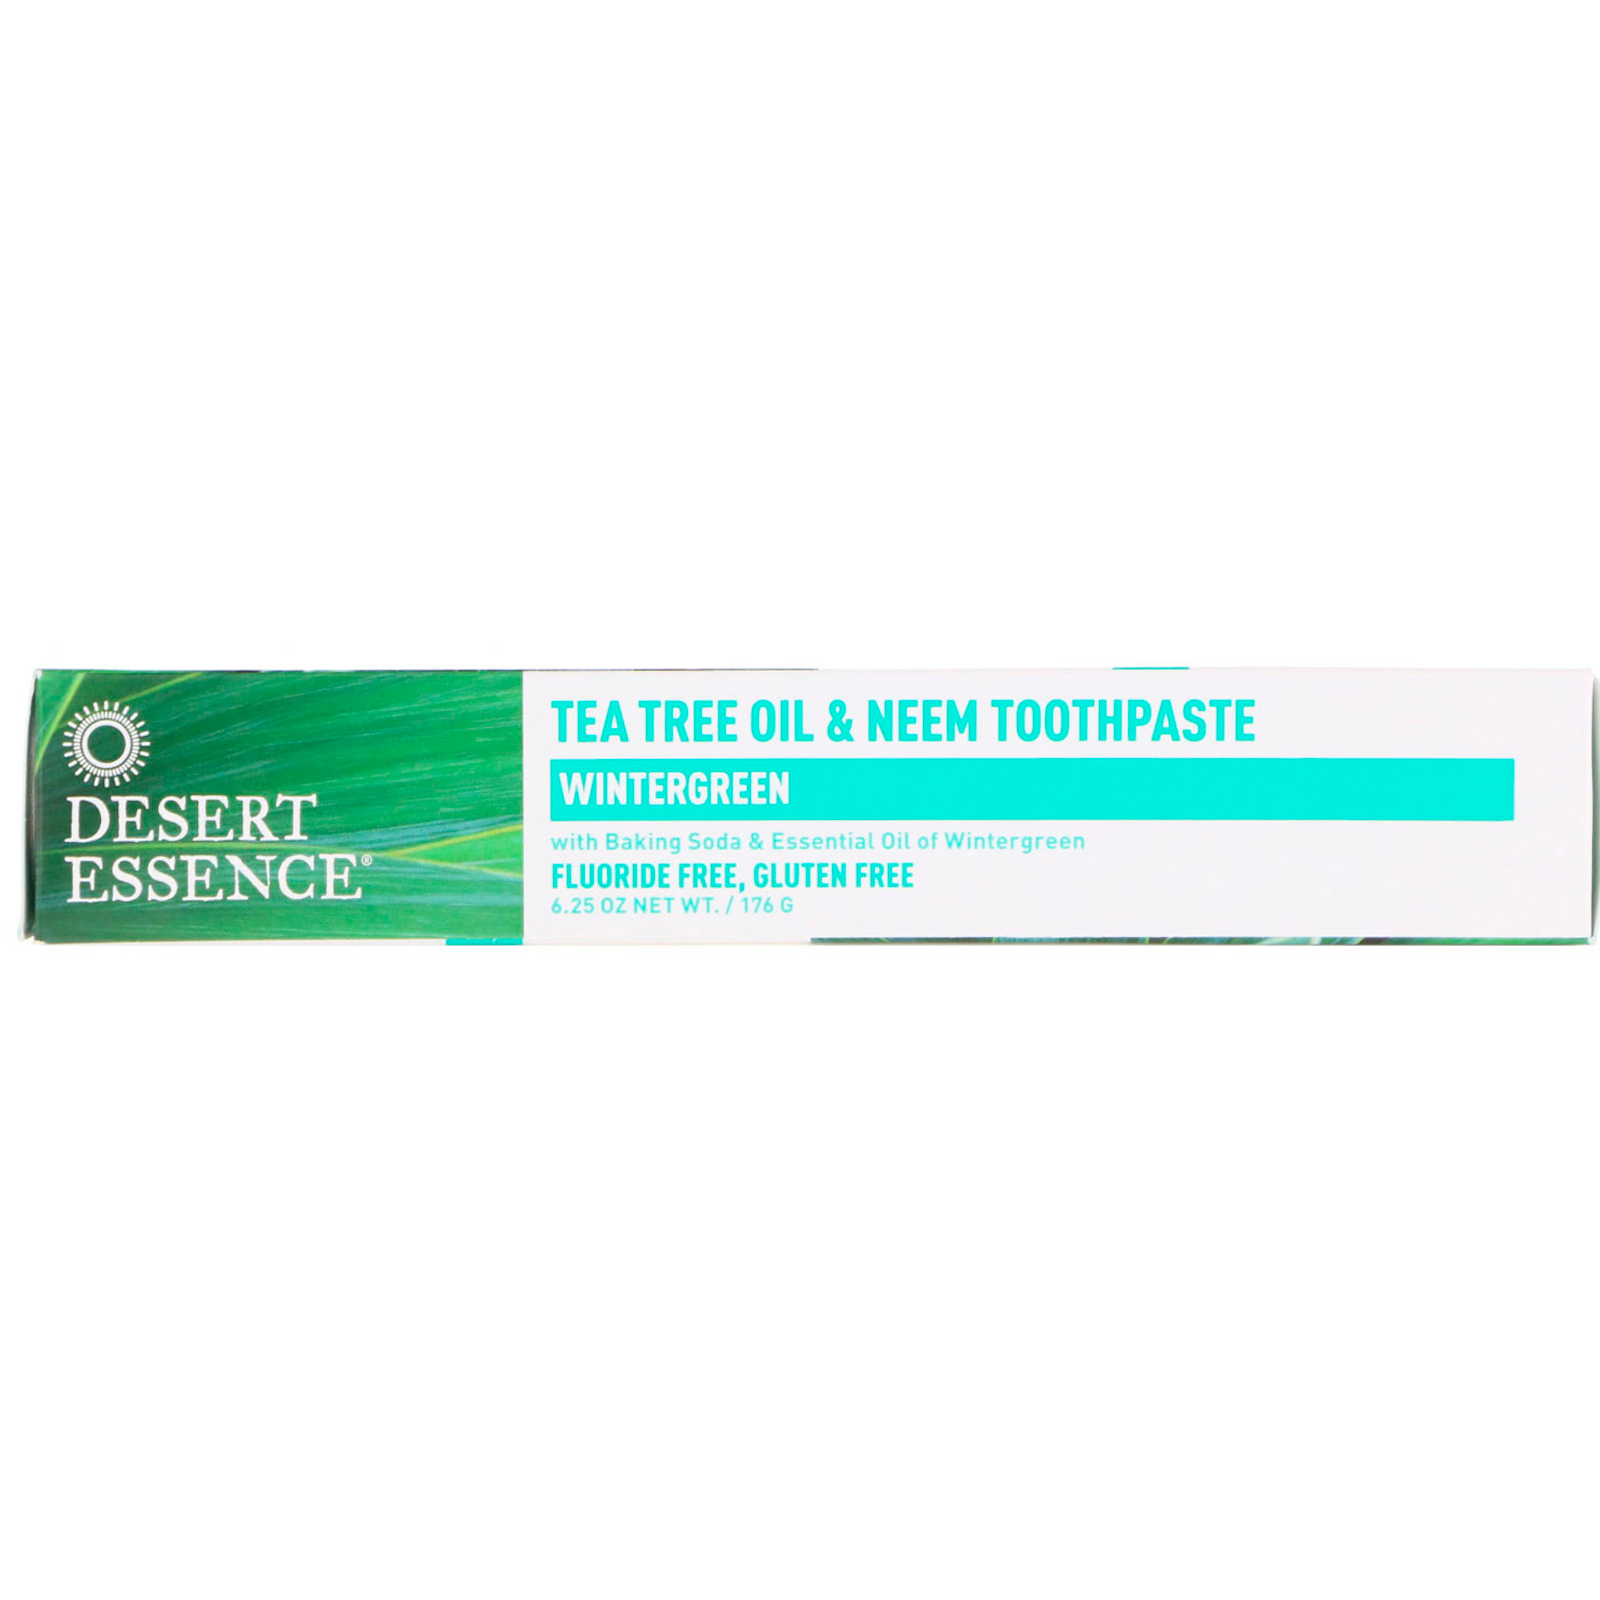 Desert Essence Tea Tree Oil Neem Toothpaste Wintergreen 6 25 Oz